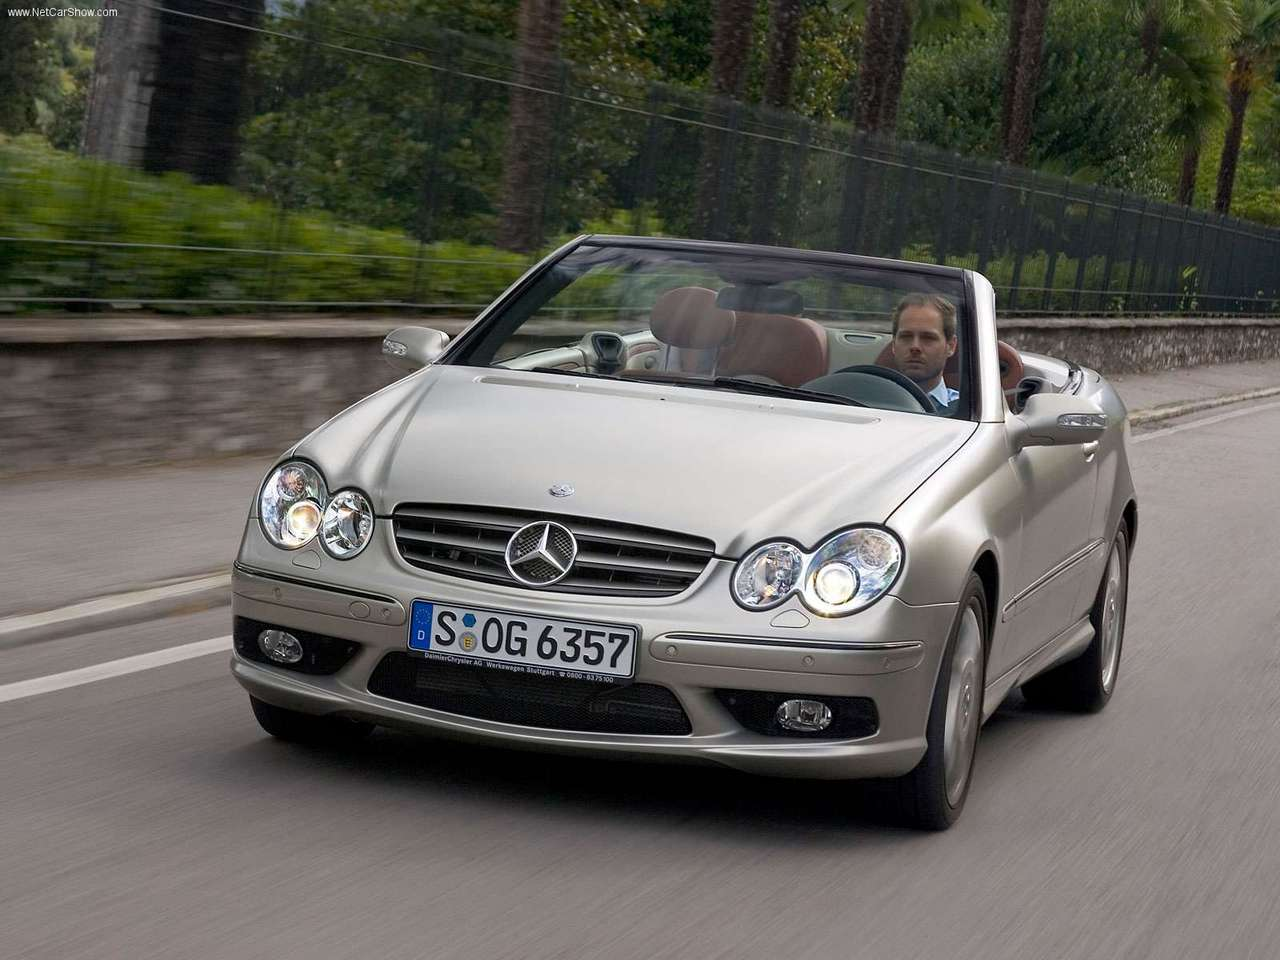 Mercedes Benz Auto twenty first century  2005 Mercedes Benz CLK